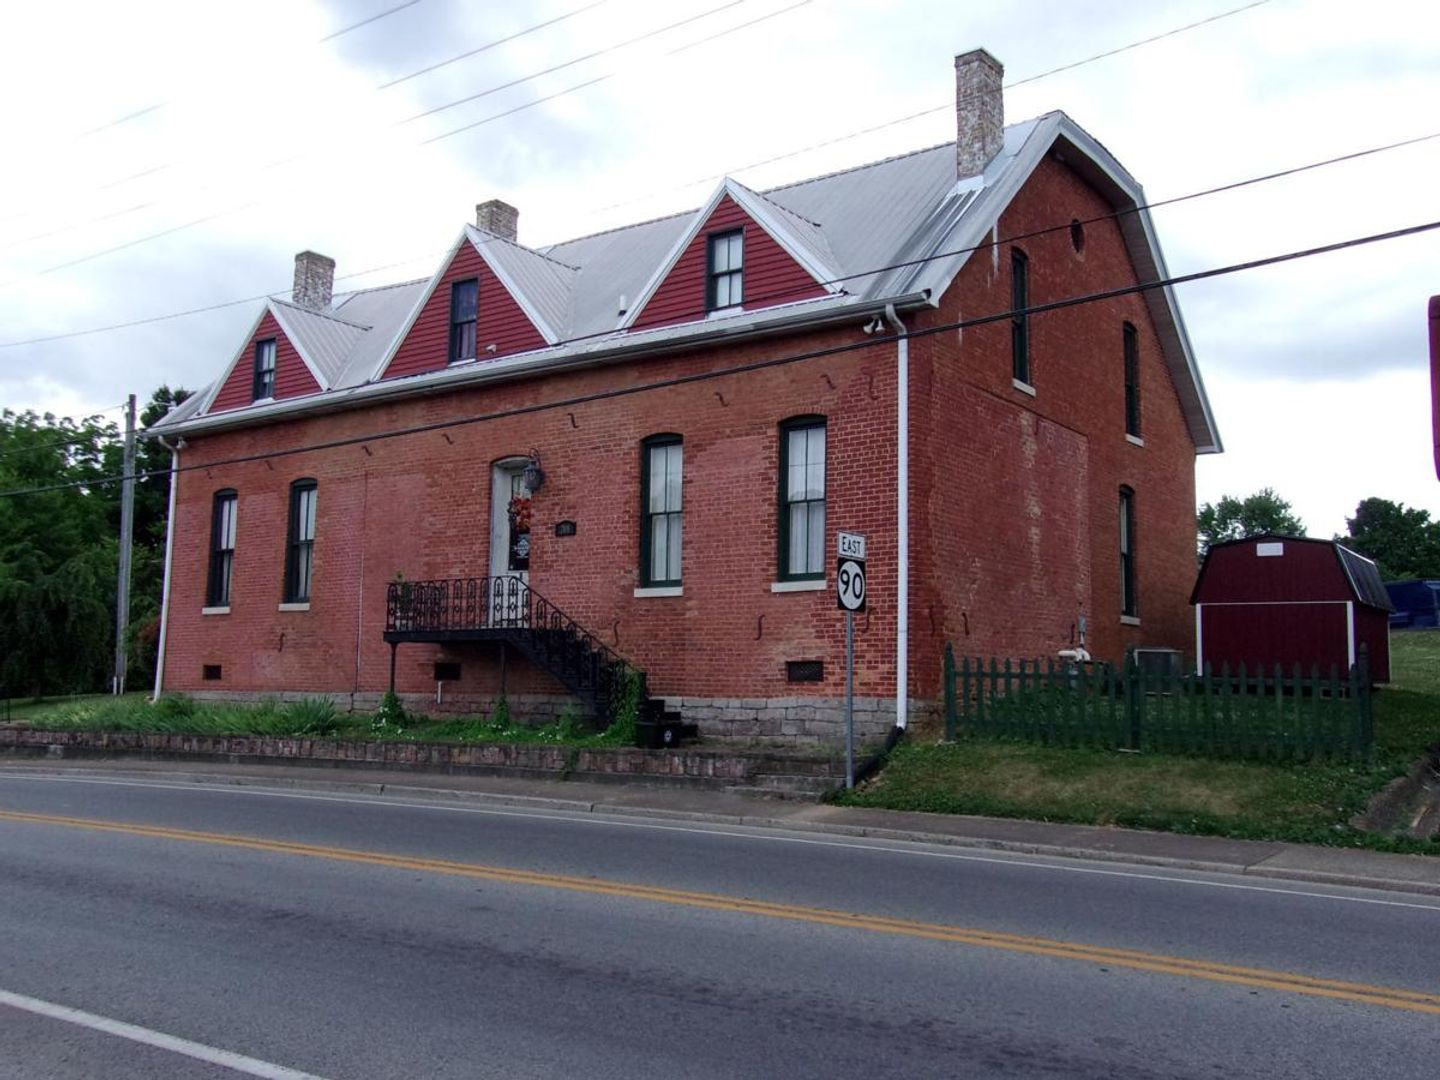 A large red brick building with a clock on the side of a road with surratt house museum in the background at Main Street - Glasgow Kentucky.